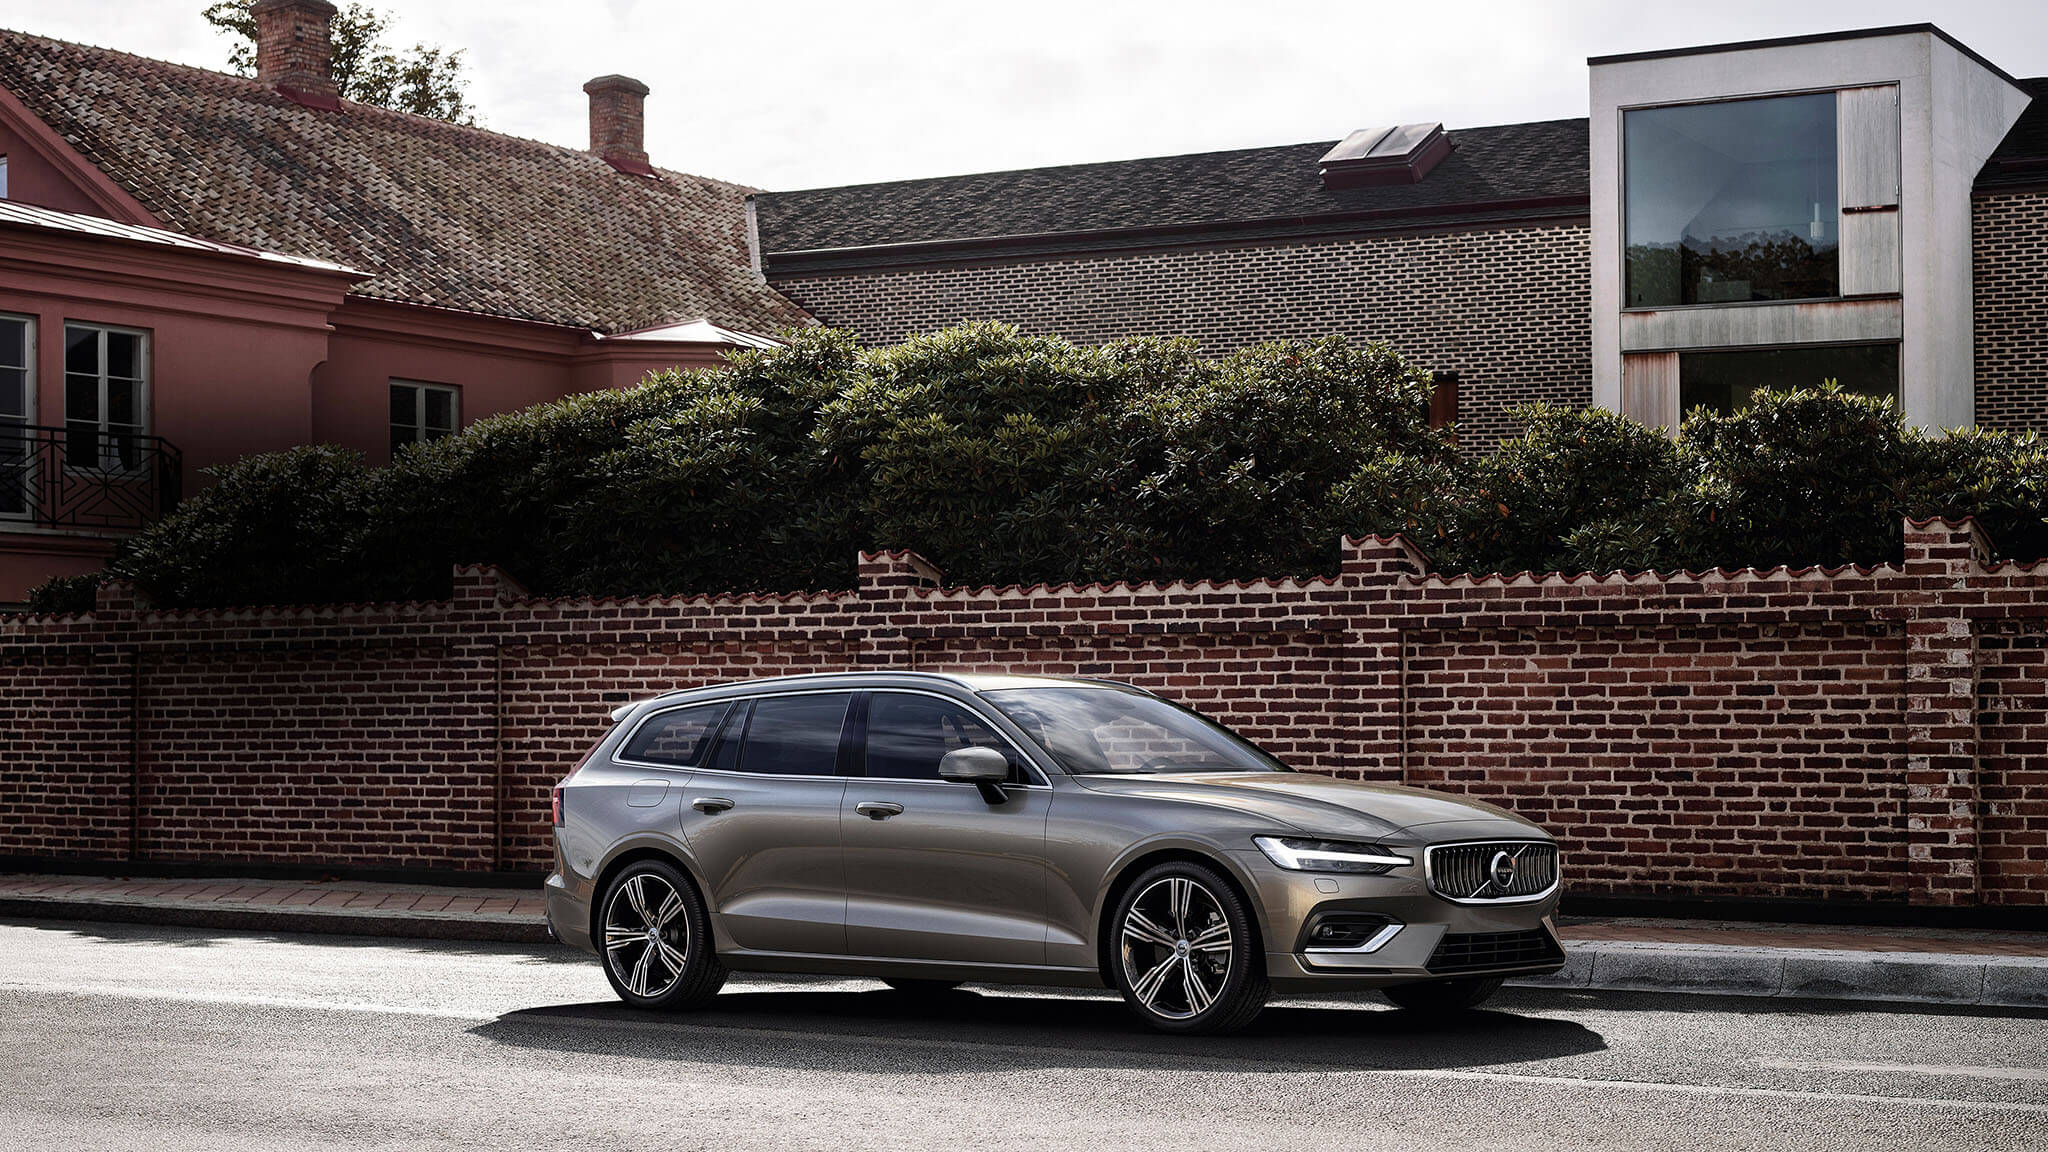 The All-New Volvo V60 Image